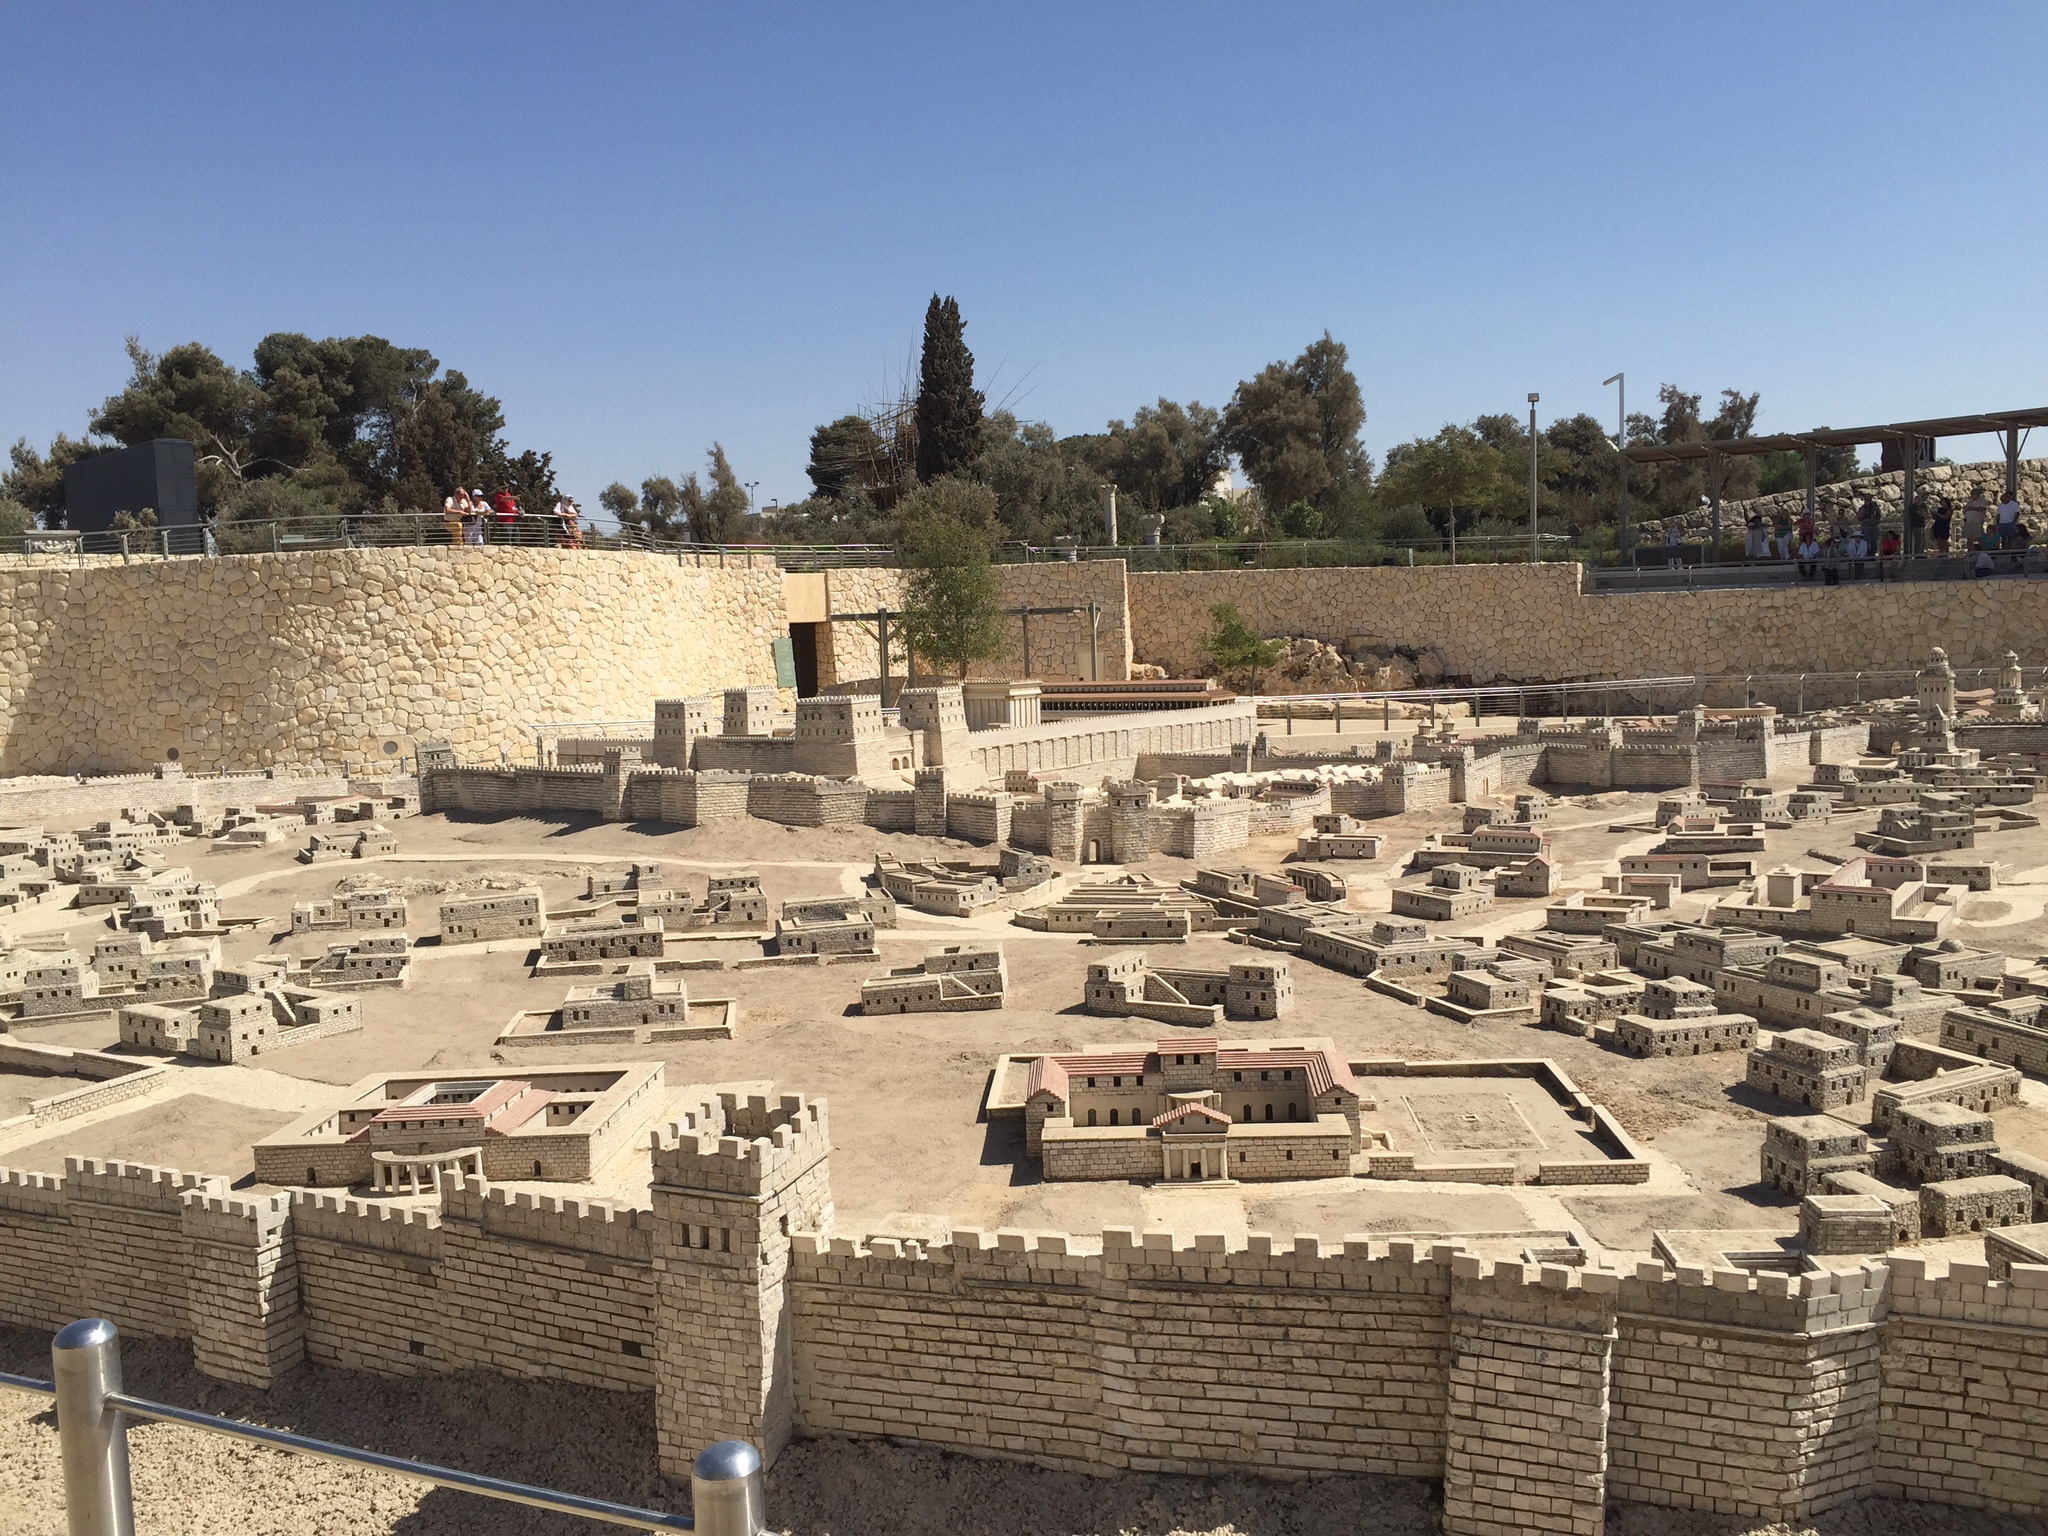 Scale model of the Old City of Jerusalem